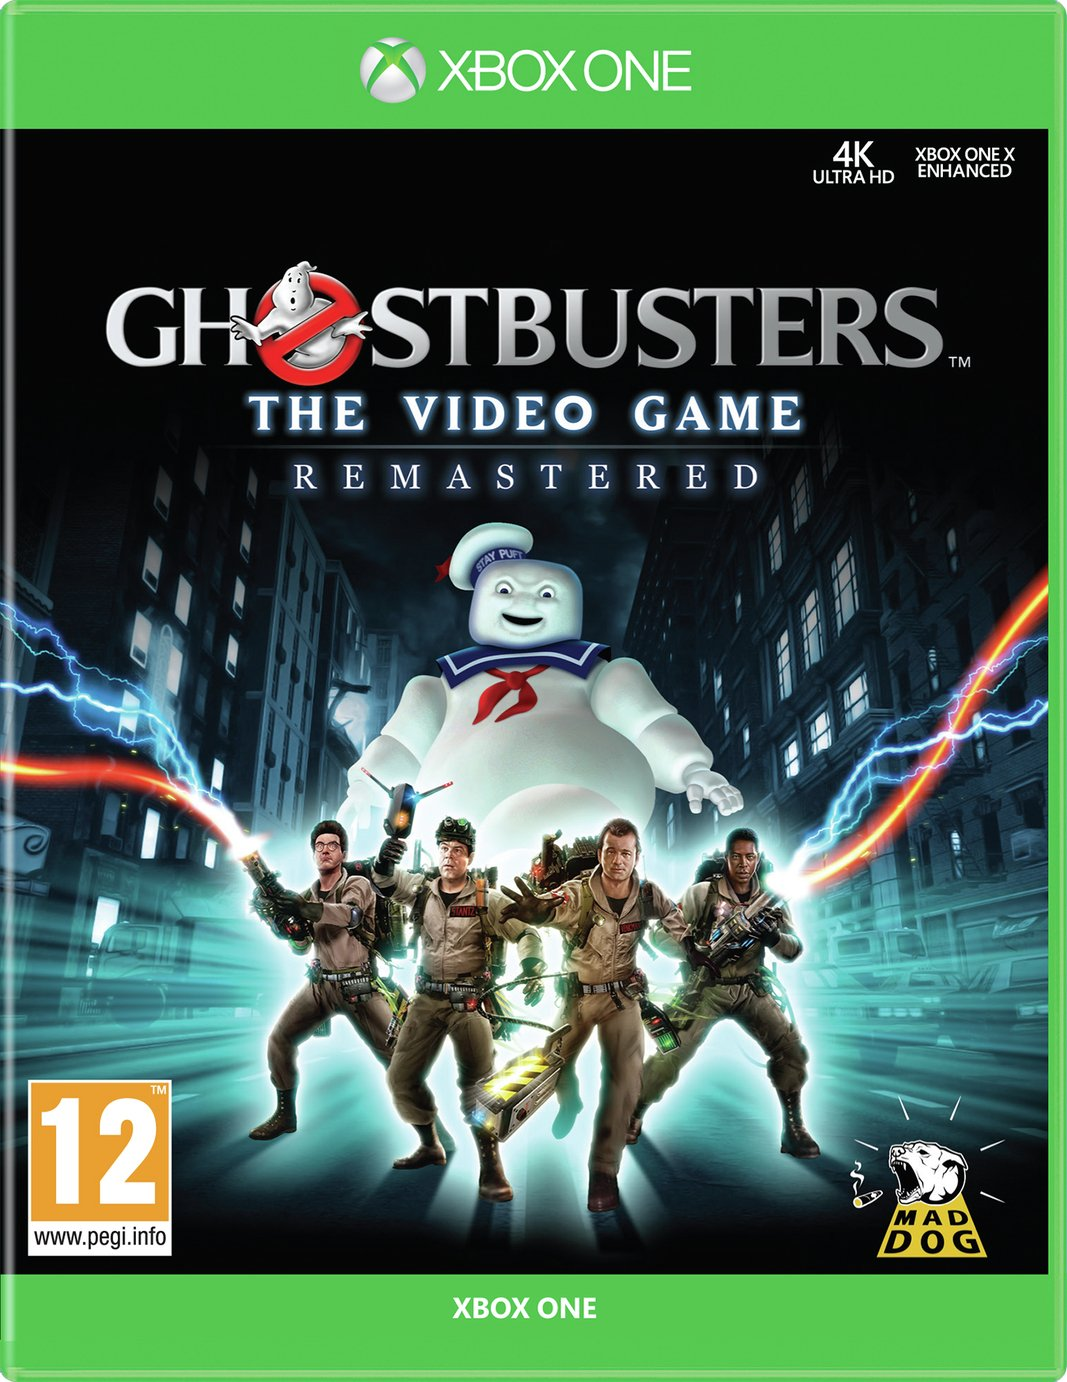 Ghostbusters: The Video Game Remastered Xbox One Pre-Order